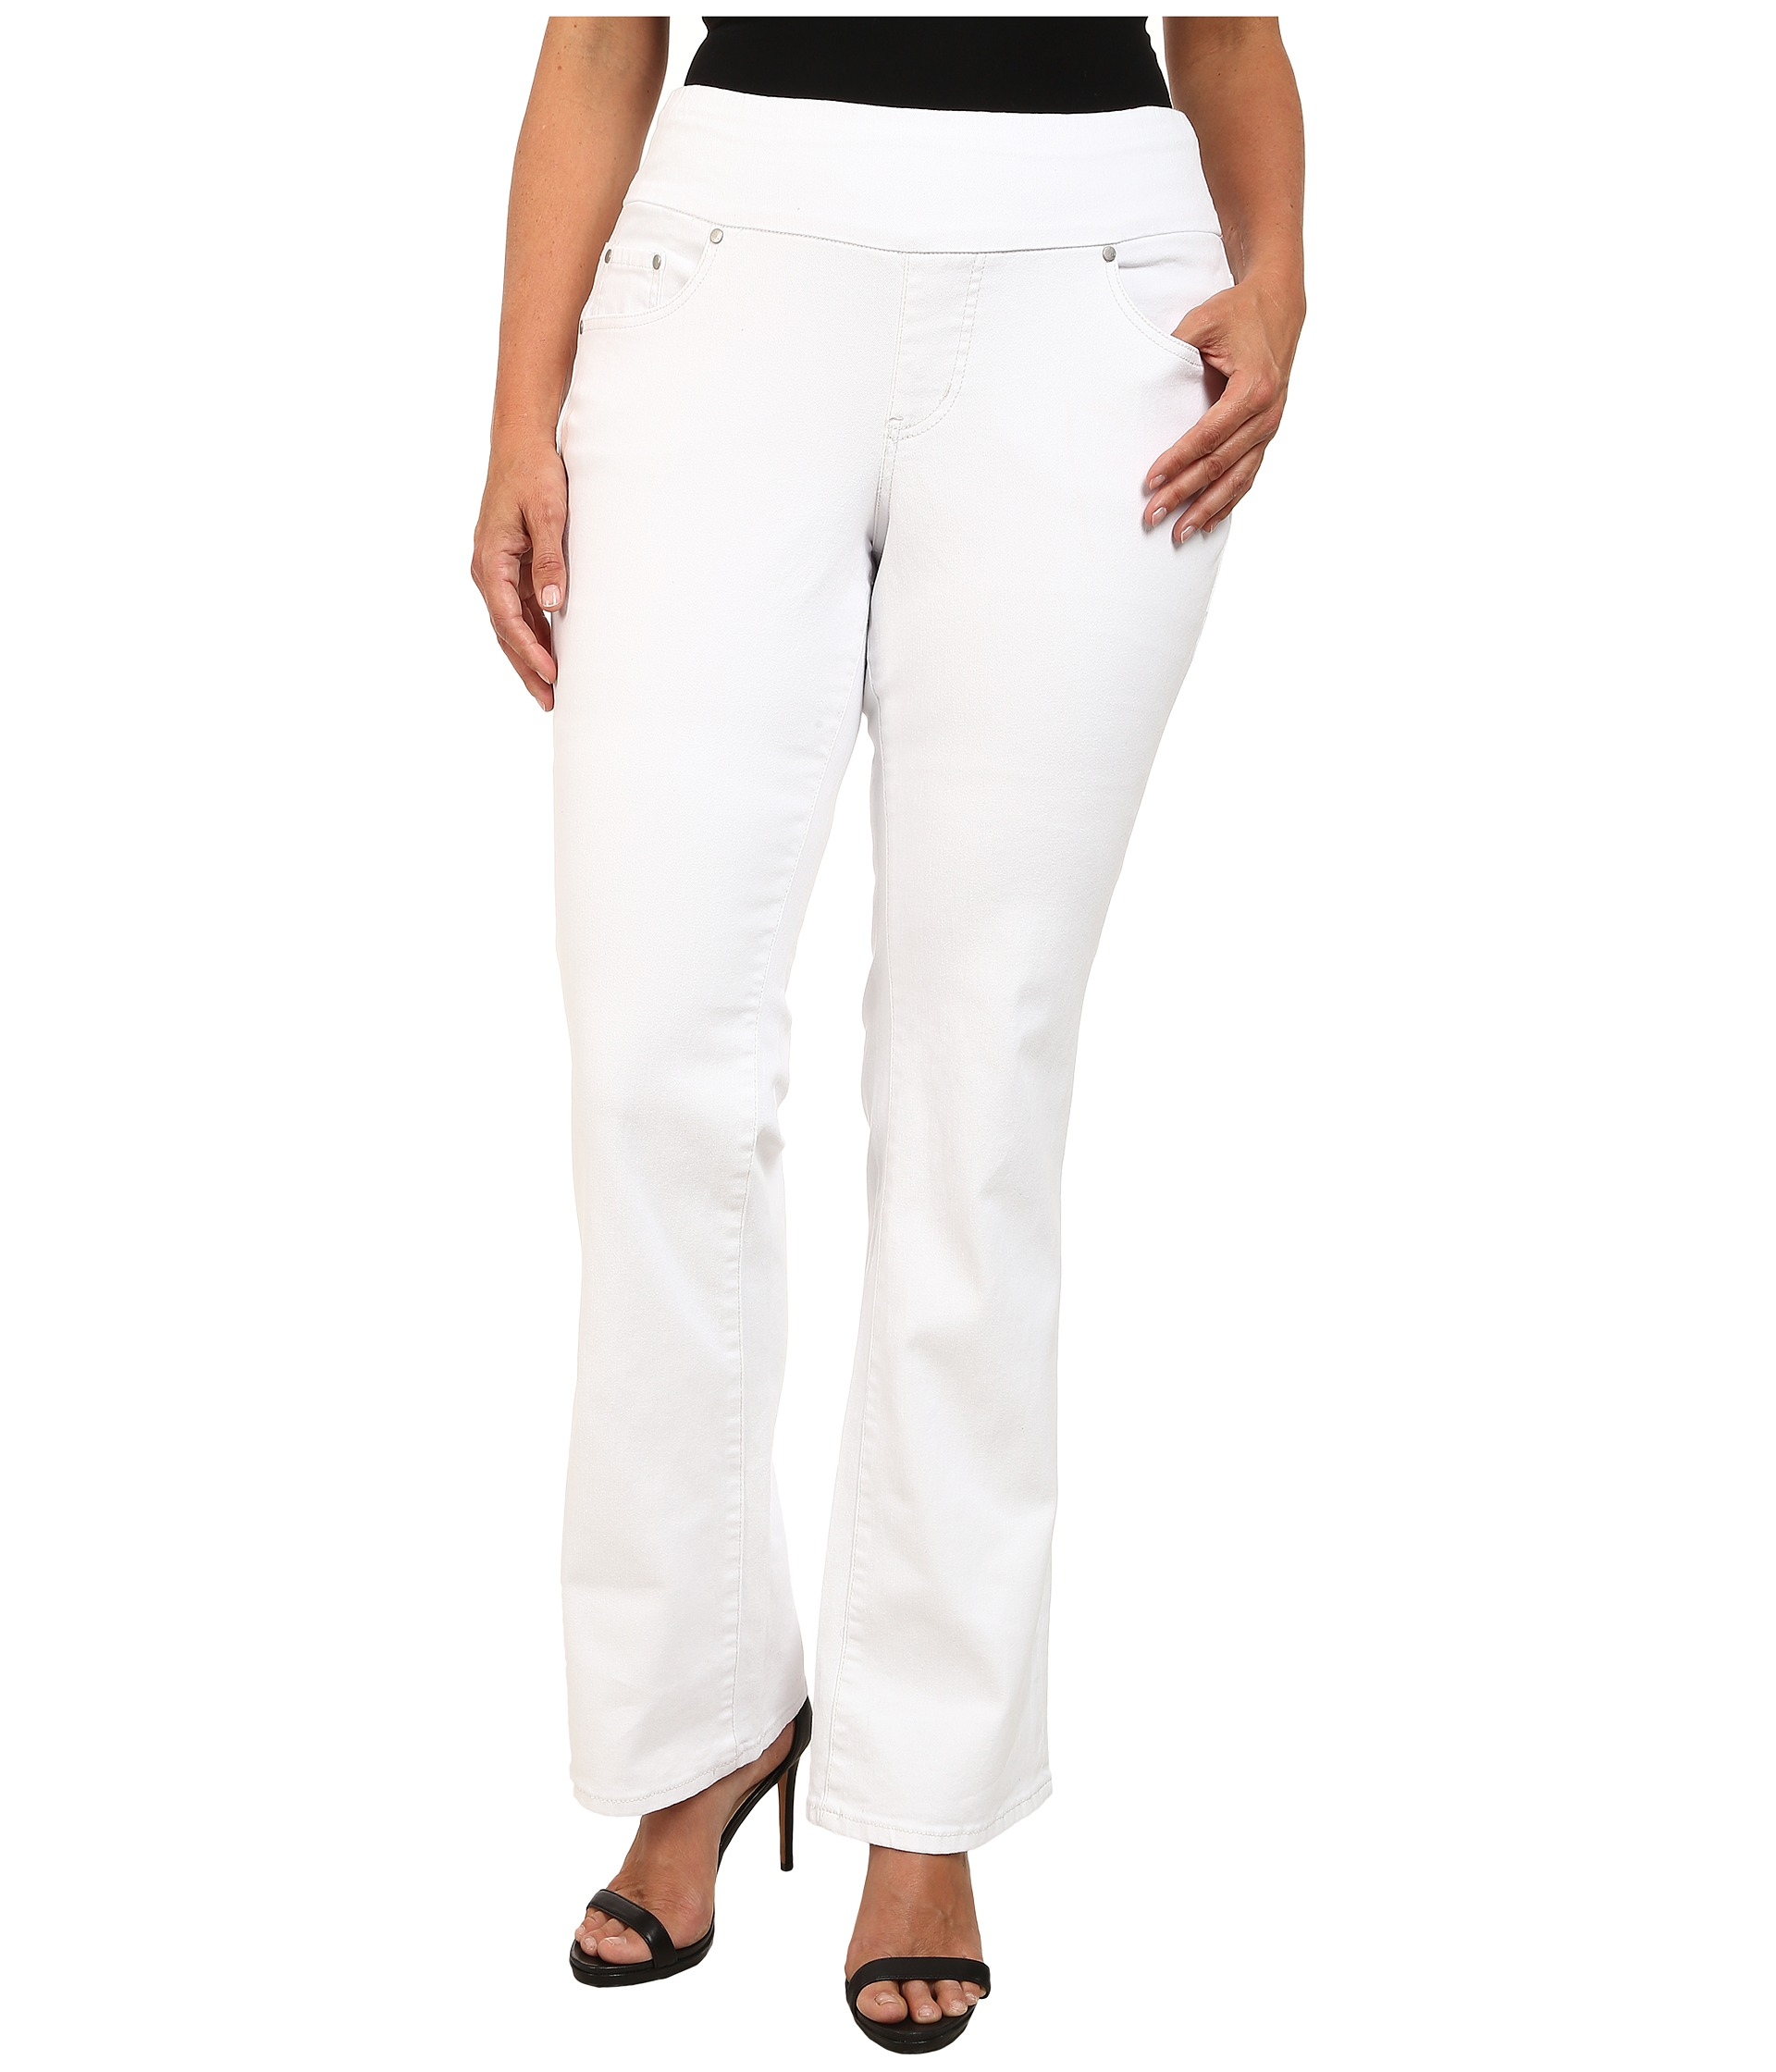 The Limited Plus Size Skinny Ankle Denim Jeans - White. Crisp white denim keep these jeans timeless and clean in a sharp ankle cut. Artfully appointed with laid-back luxe that endures, this.